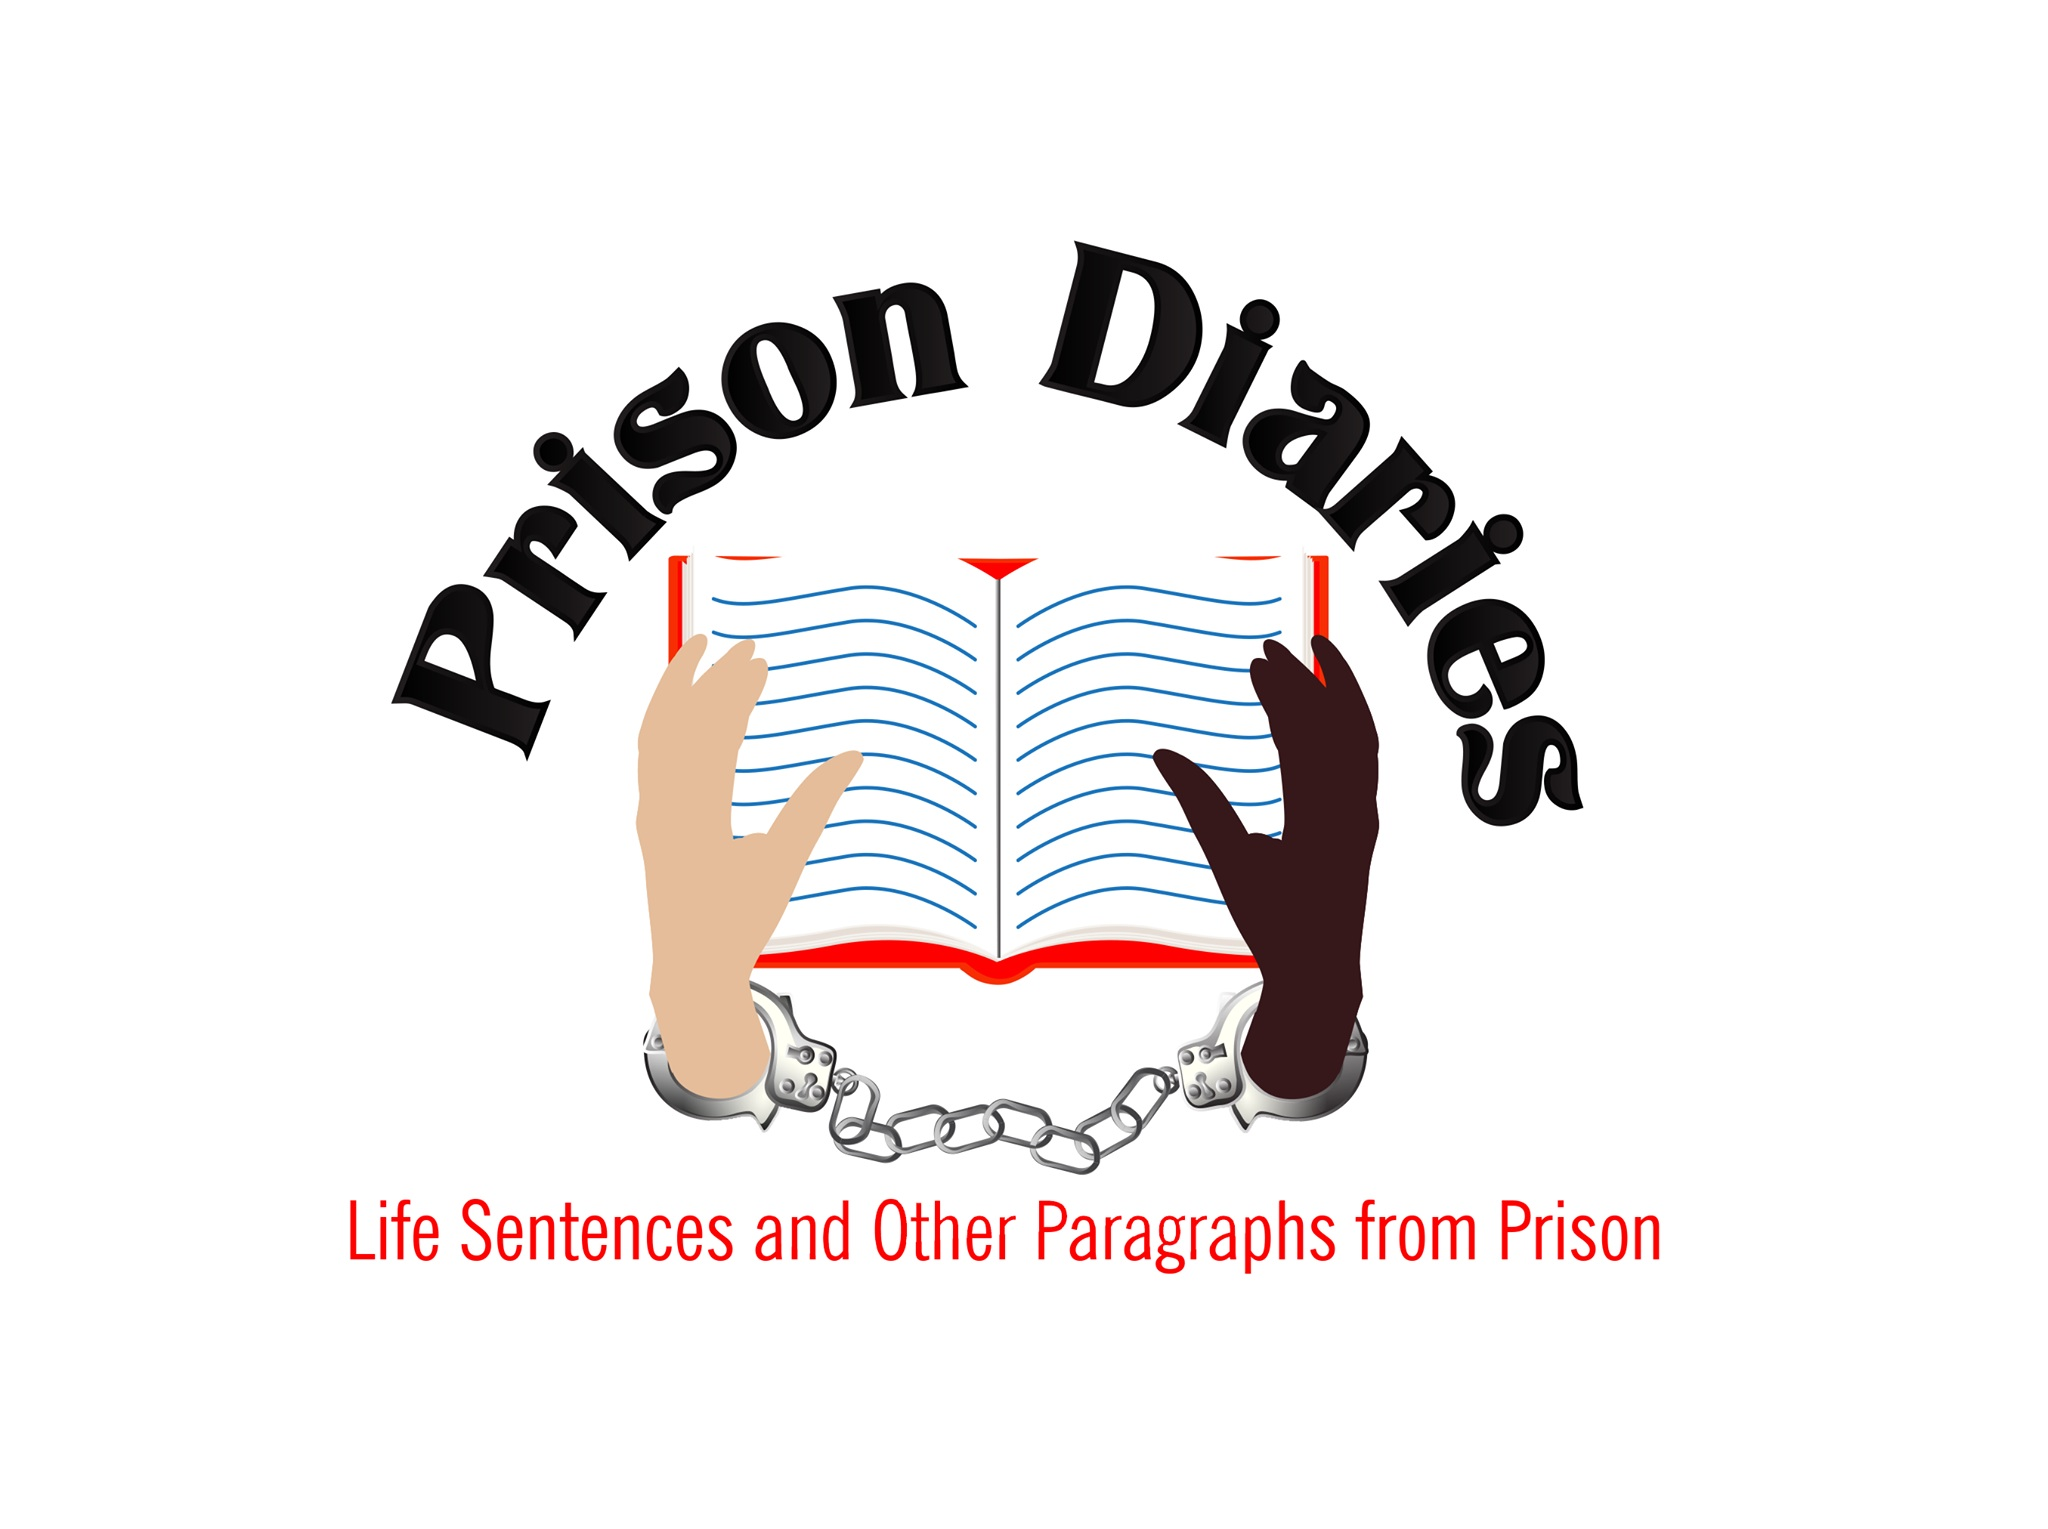 Prison Diaries' new logo